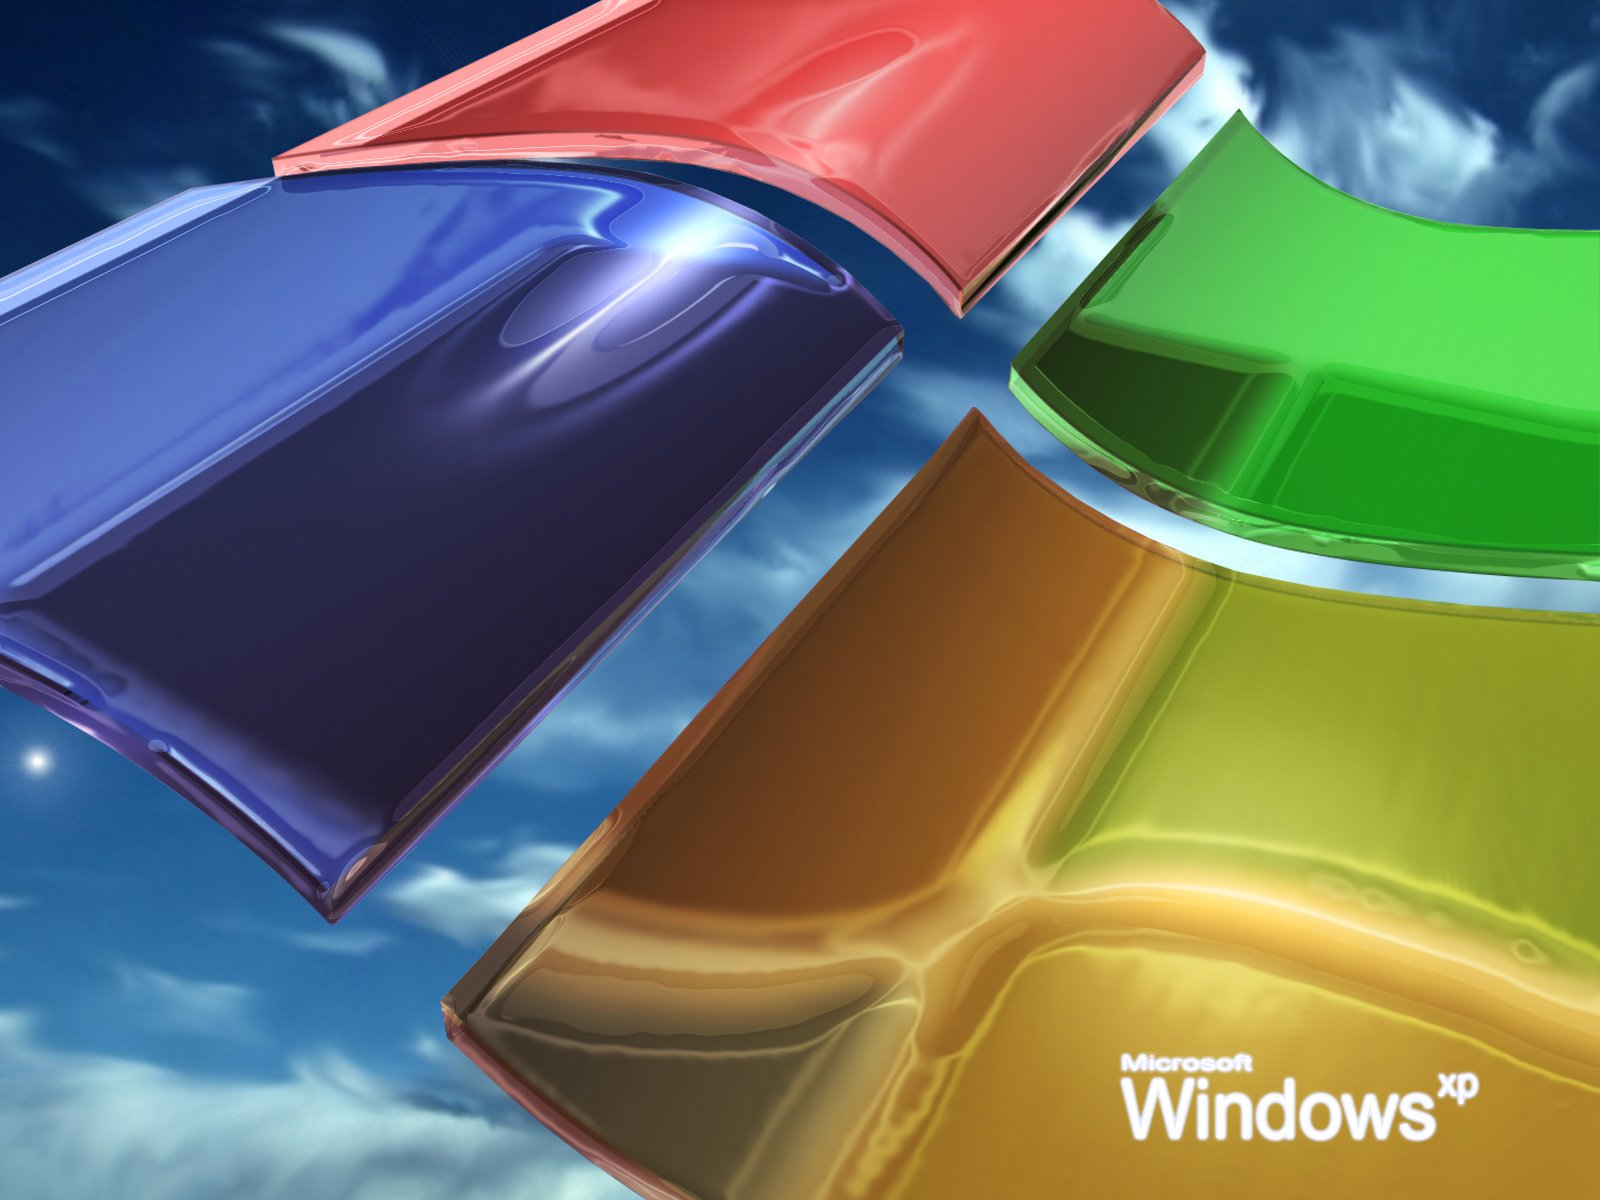 winxp wallpaper